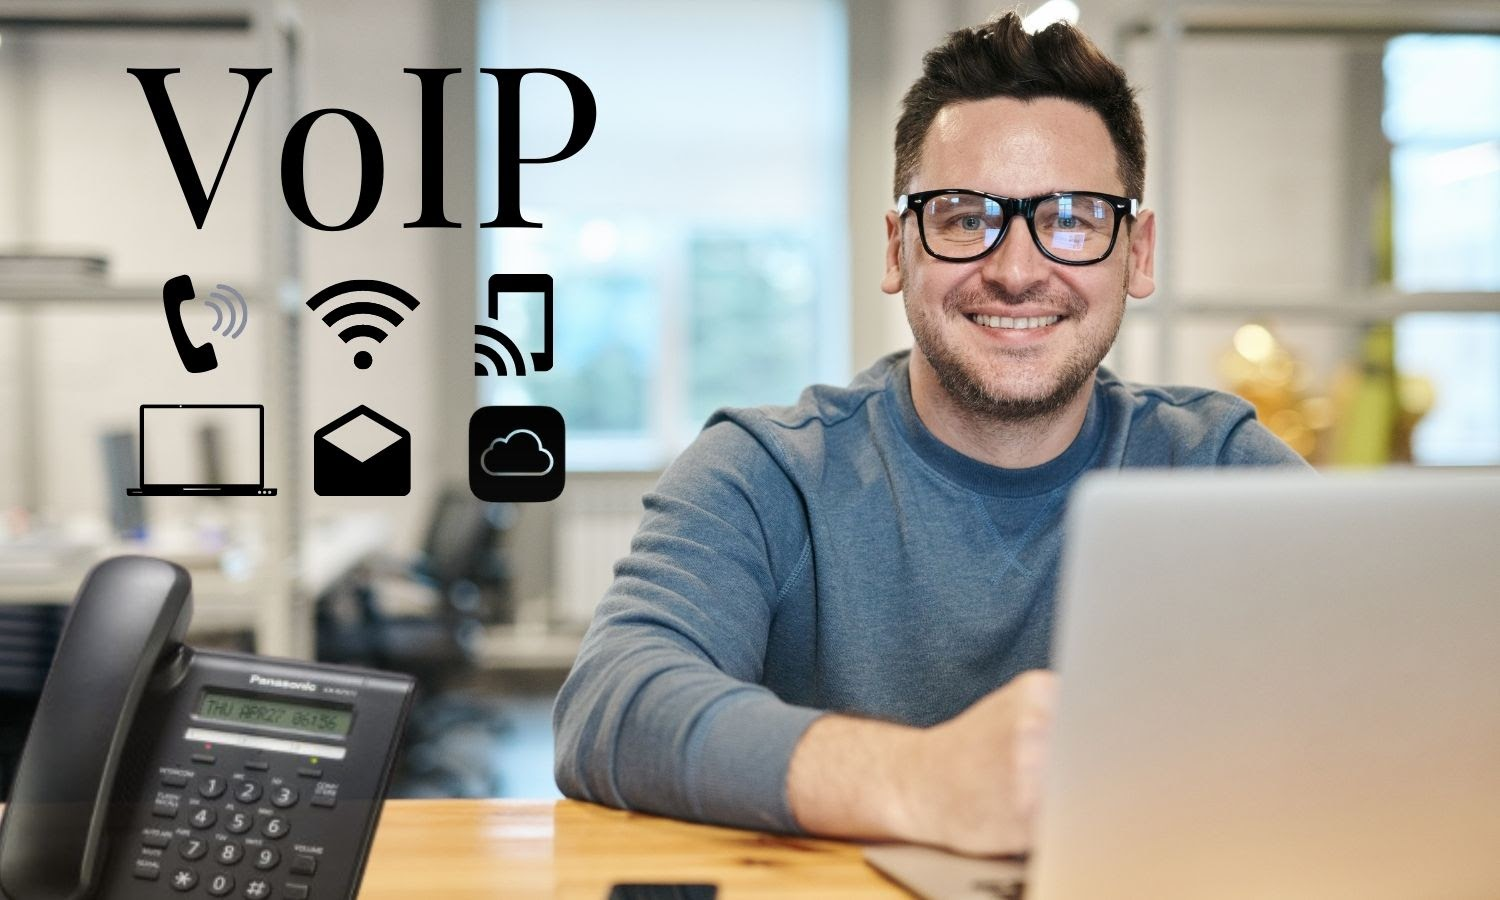 Awesome Facts About VOIP That Can Help Your Business Grow